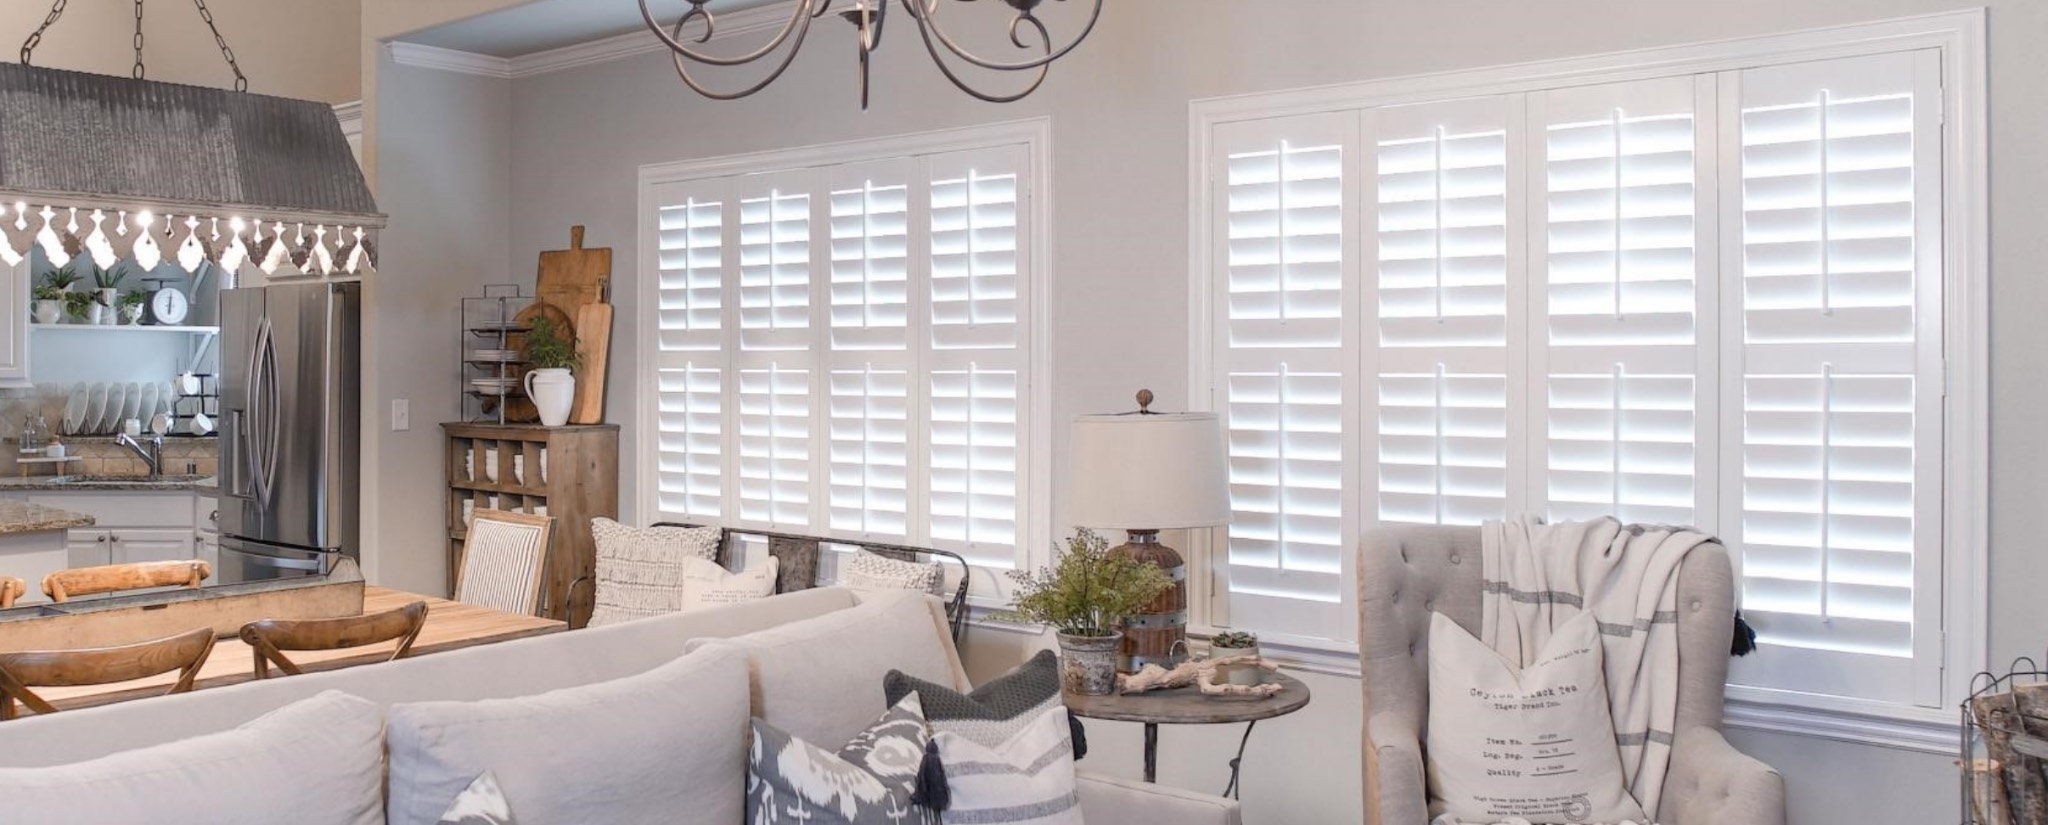 Kids bedroom with plantation shutters